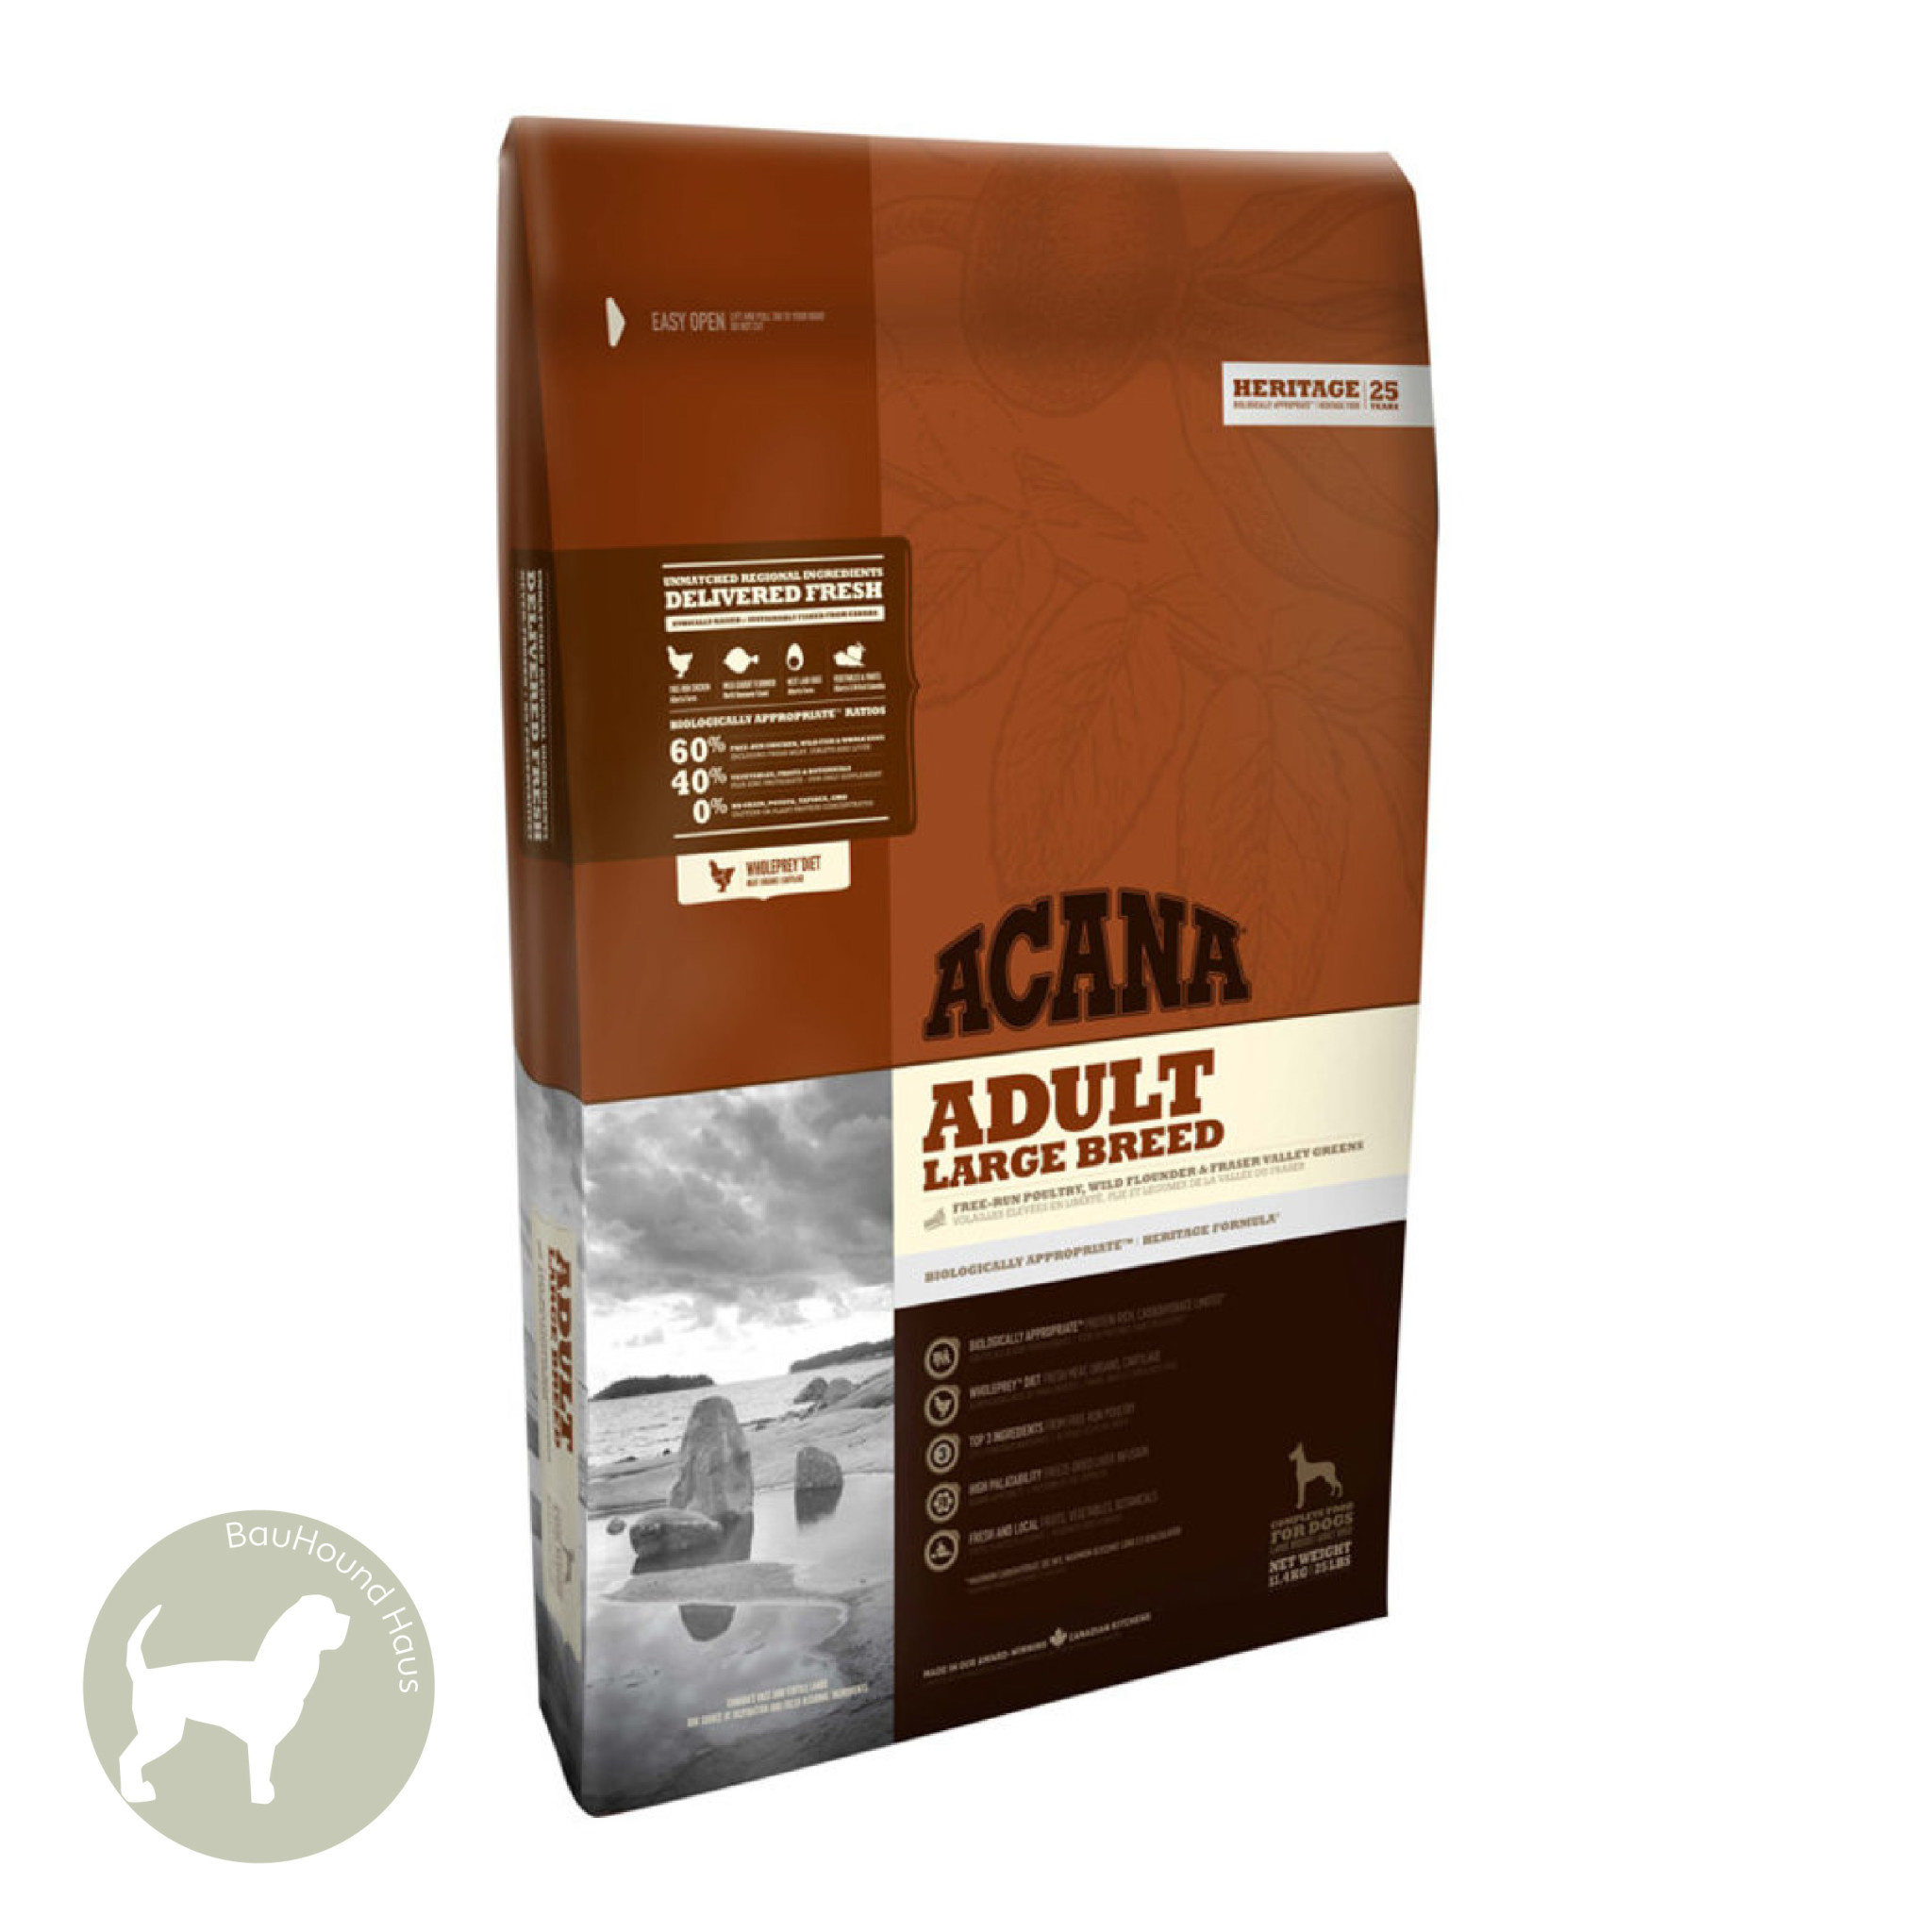 Acana Acana HERITAGE Large Breed Adult Kibble, 17kg